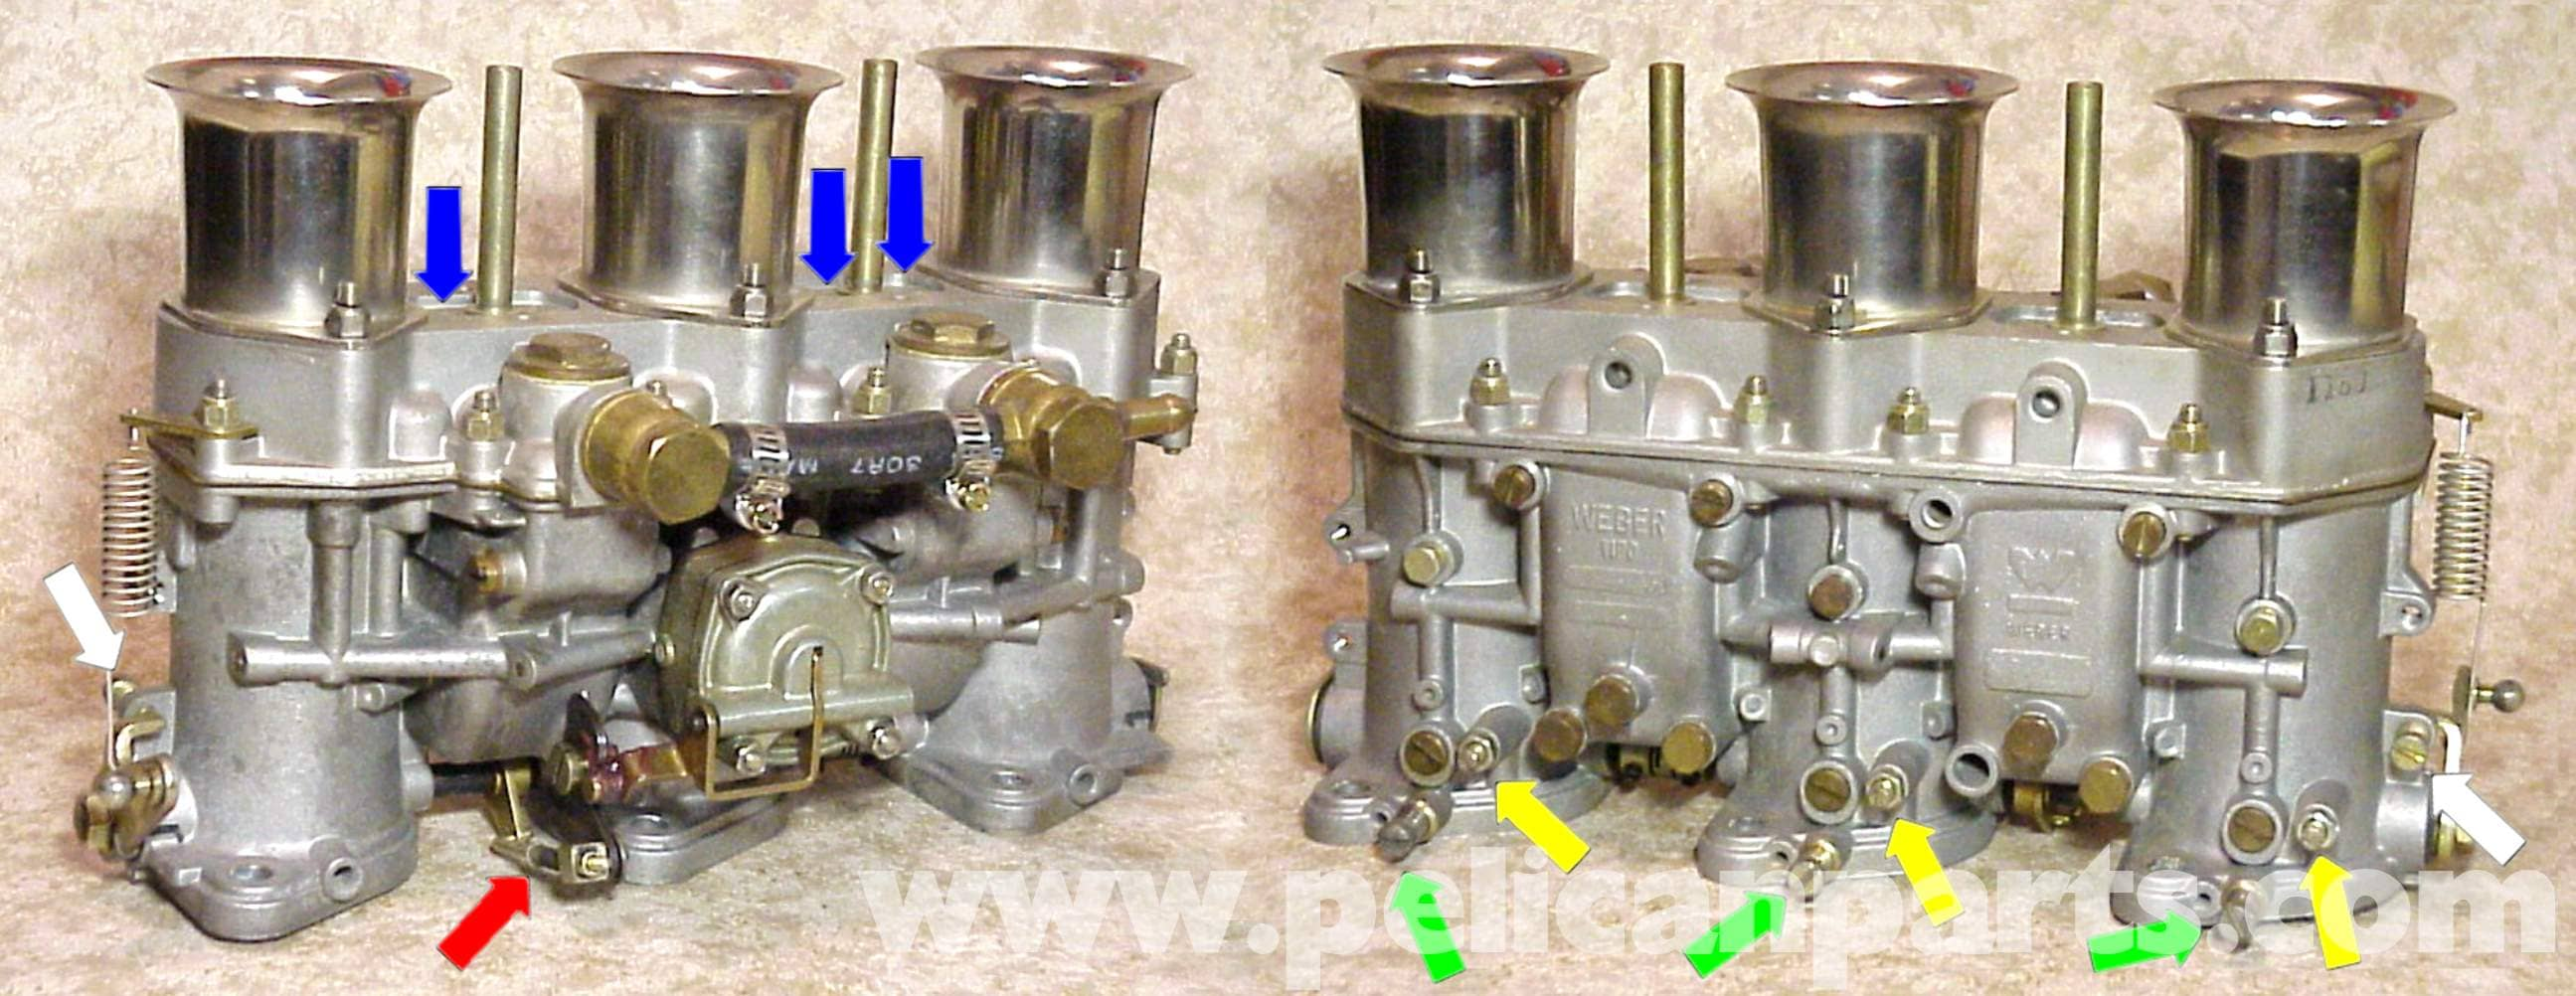 Porsche 911 Carburetor Adjustment Balance And Tuning 1965 73 Likewise Wiring Diagram As Well 1983 Large Image Extra